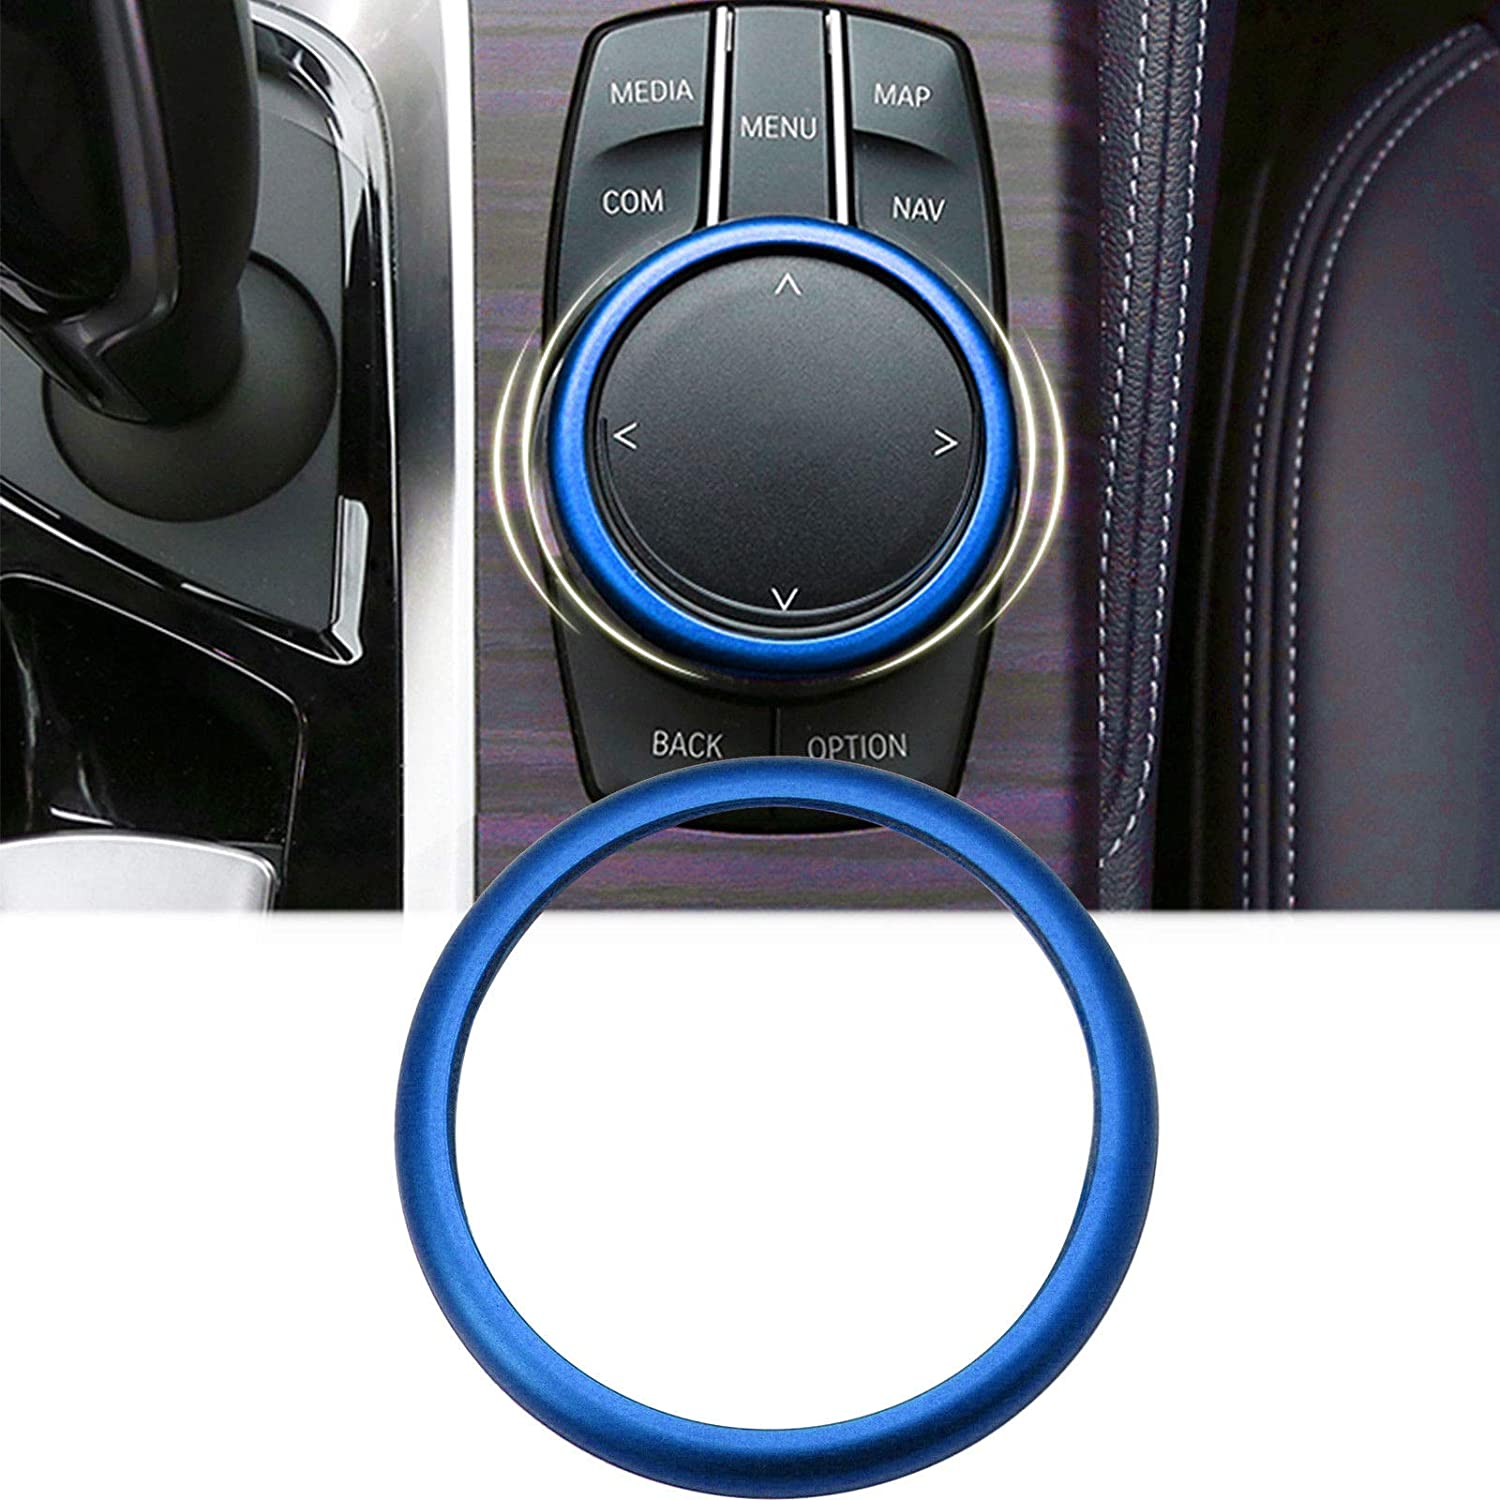 Red Xotic Tech Direct Xotic Tech Engine Start Stop Button Cover Key Switch Aluminum Decor Ring Sticker for BMW 5 Series X5 F10 F11 2017 2018 up